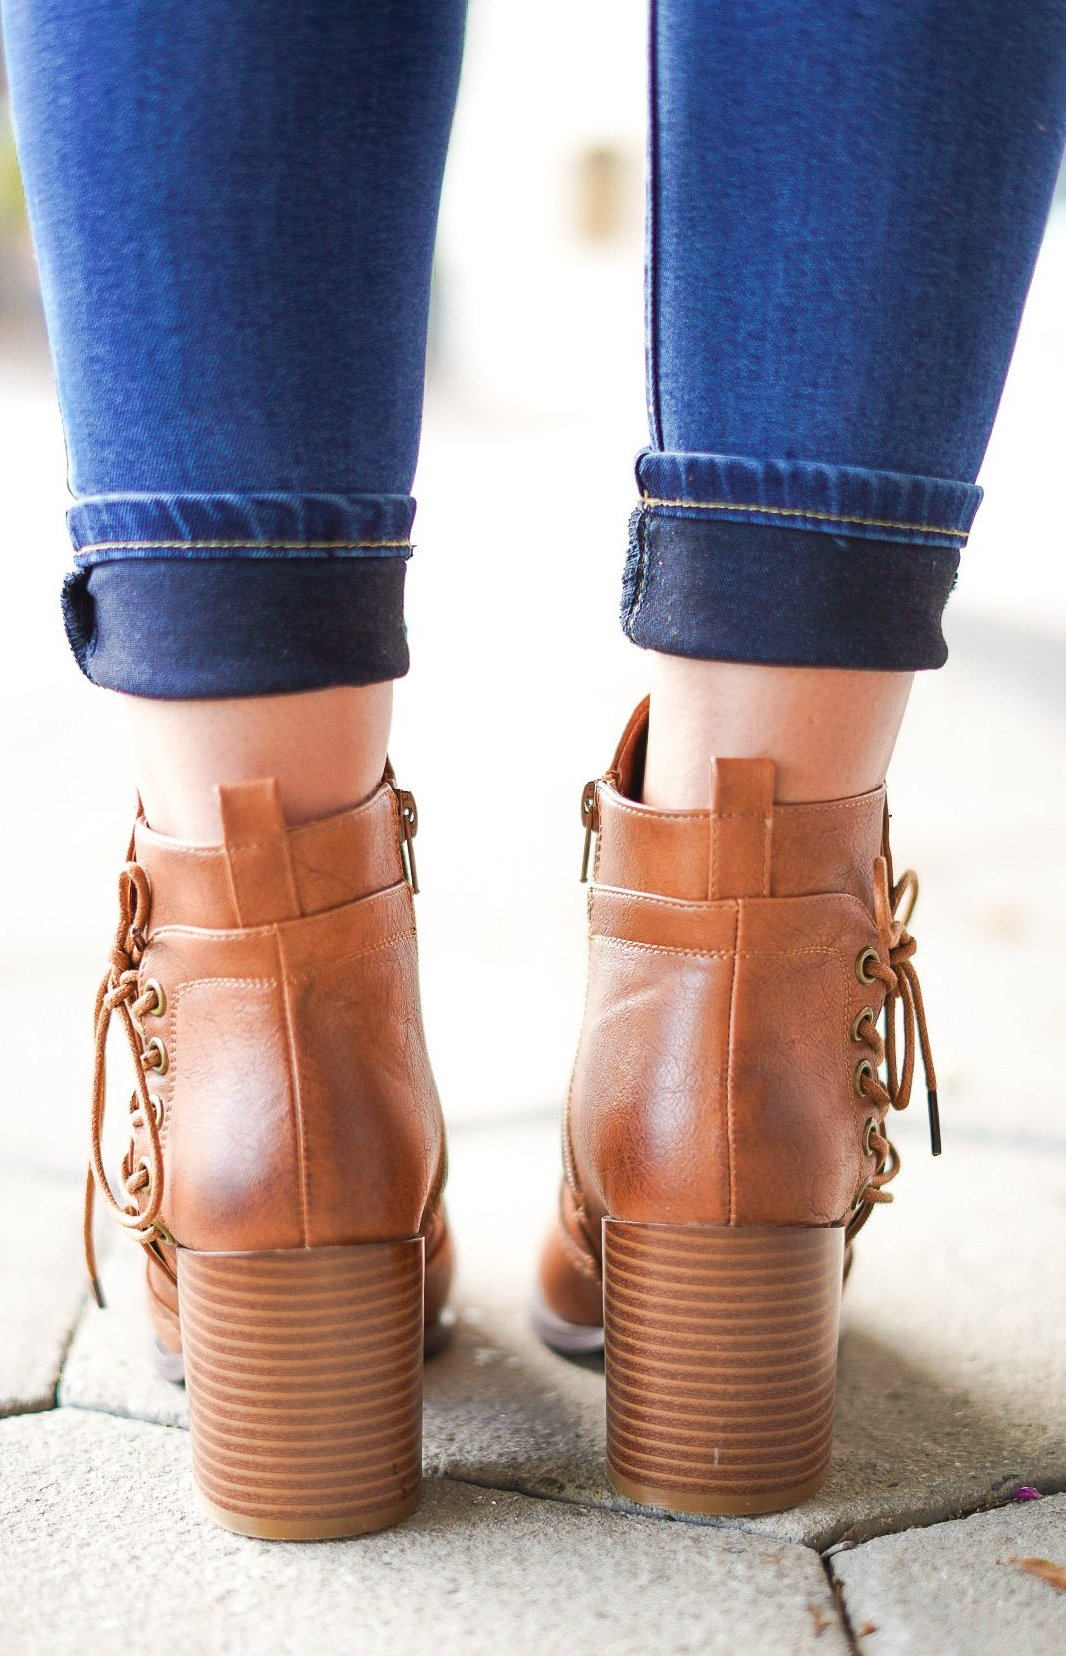 We Fell in Love Booties